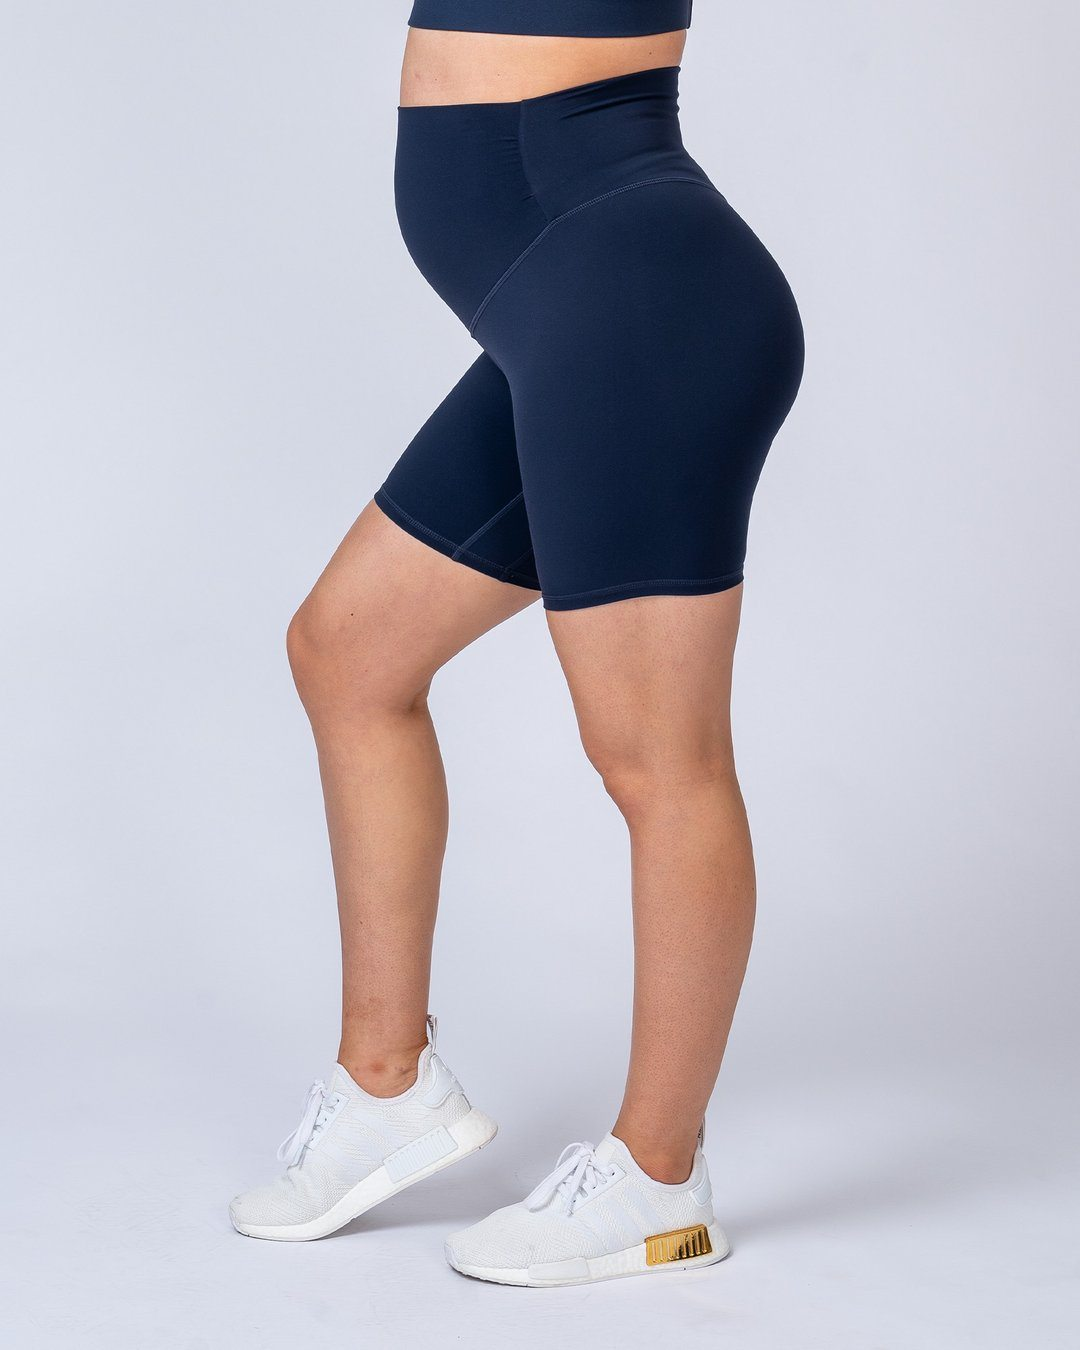 Muscle Nation Maternity Bike Shorts - Navy